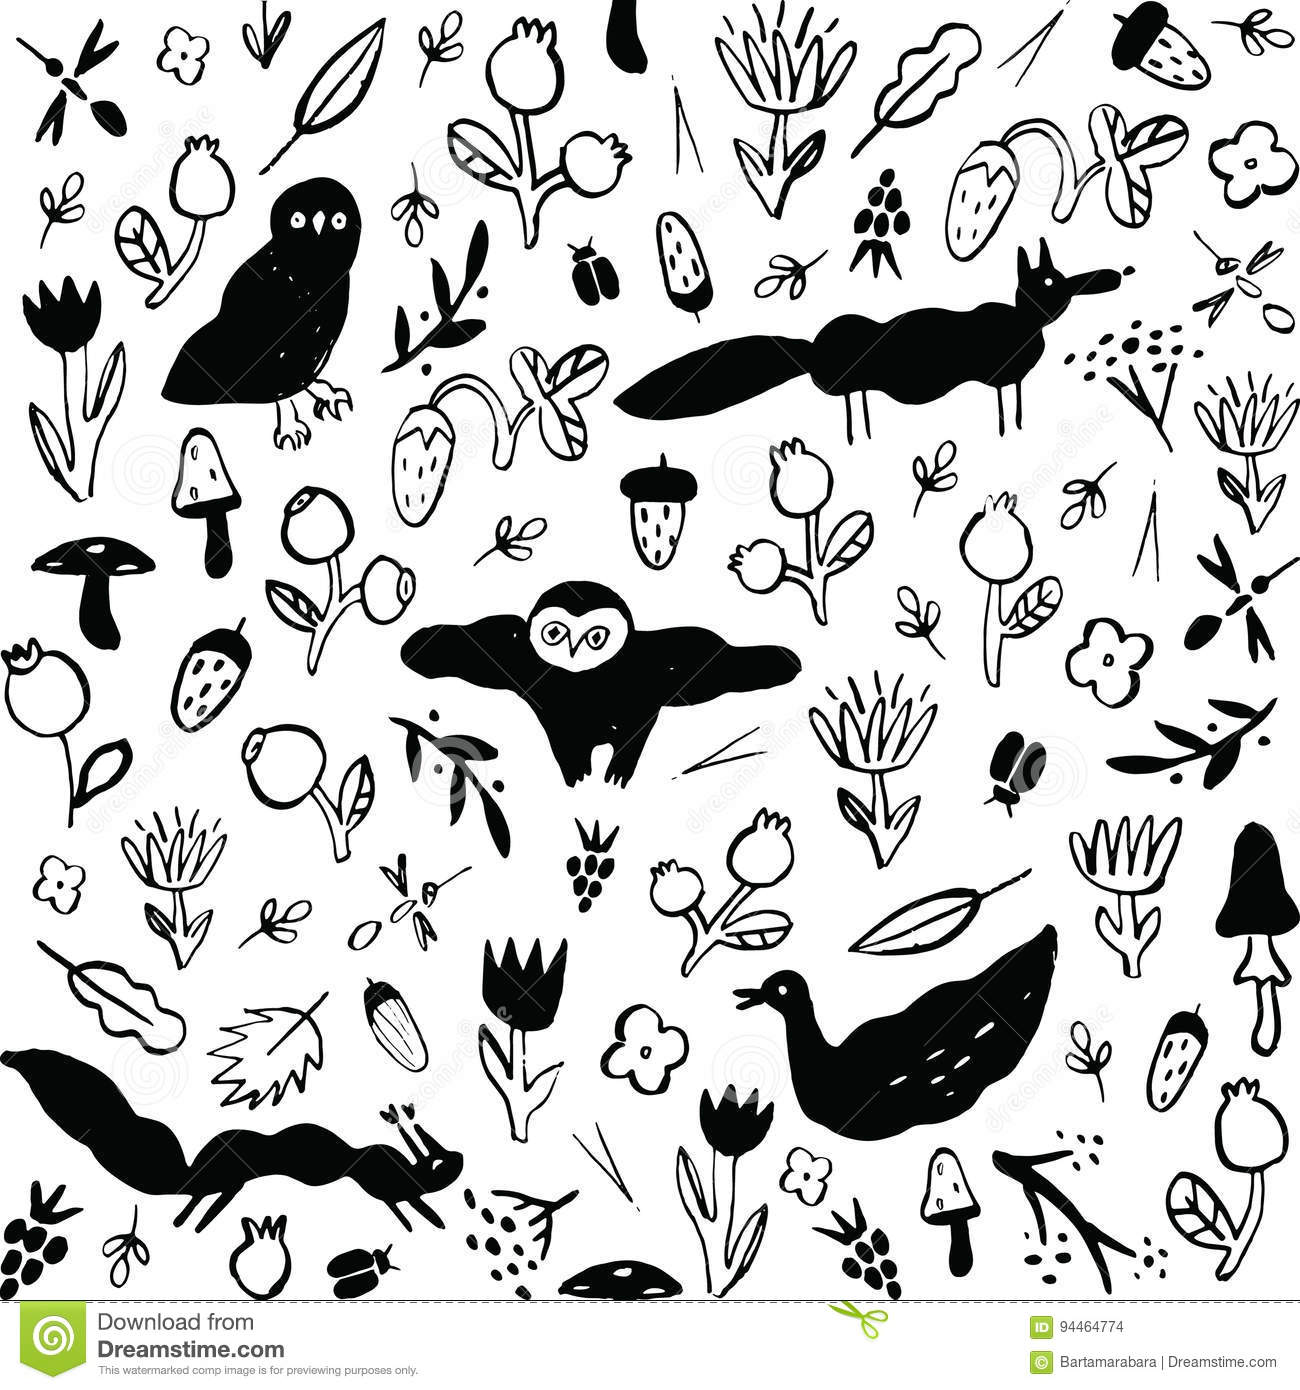 Seamless black and white pattern with animals, flowers, berries, mushrooms and insects.